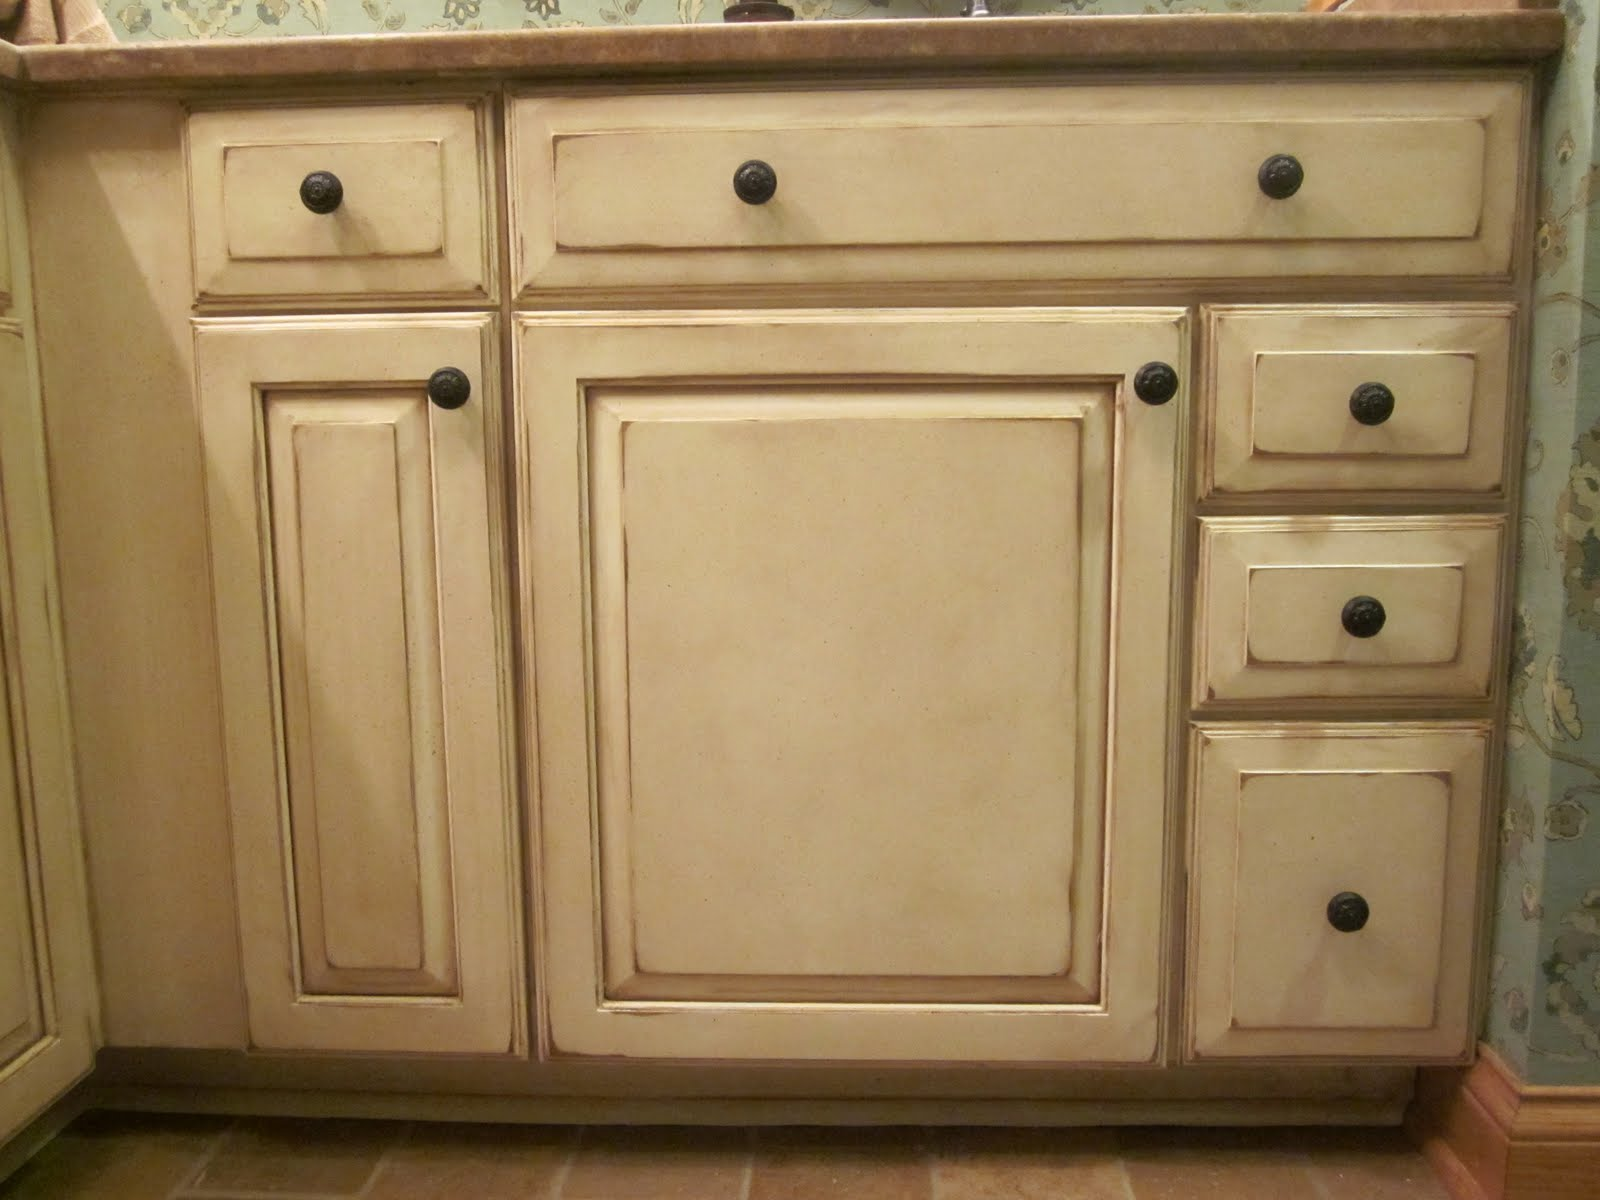 Dixon specialty finishes llc louisville faux hand painted cabinets before and after - How to glaze kitchen cabinets cream ...